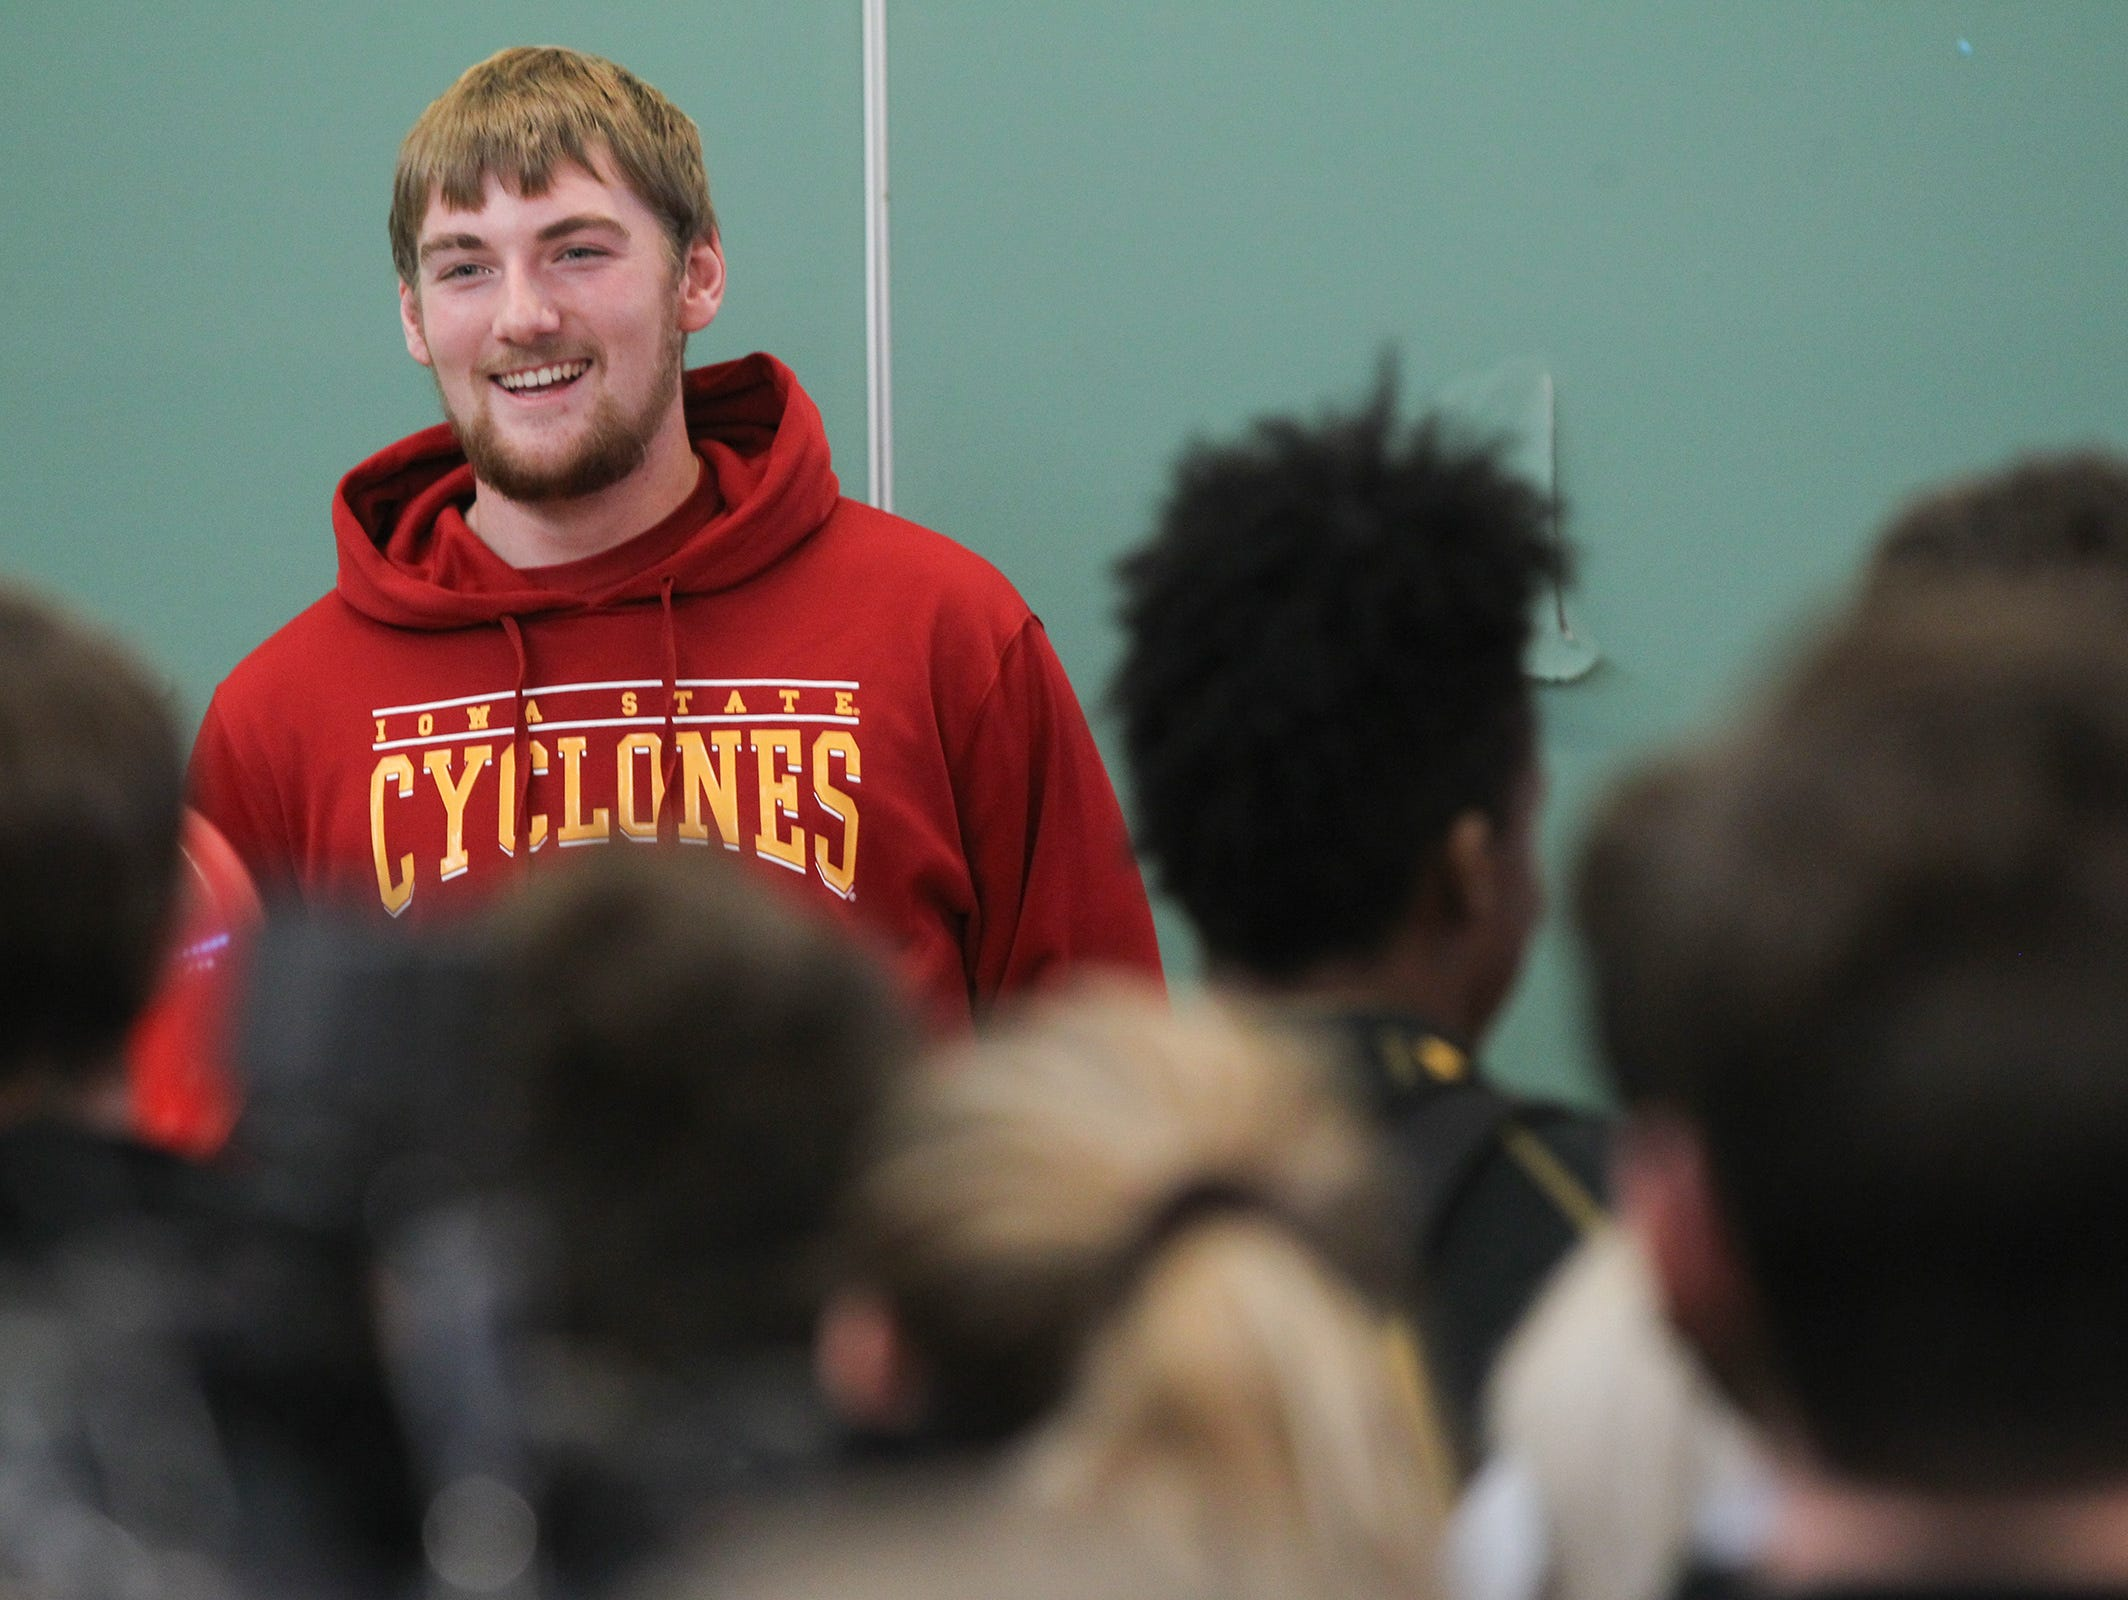 West High senior and Iowa State football recruit Alex Kleinow thanks friends and family during the school's signing day event on Wednesday, Feb. 1, 2017.